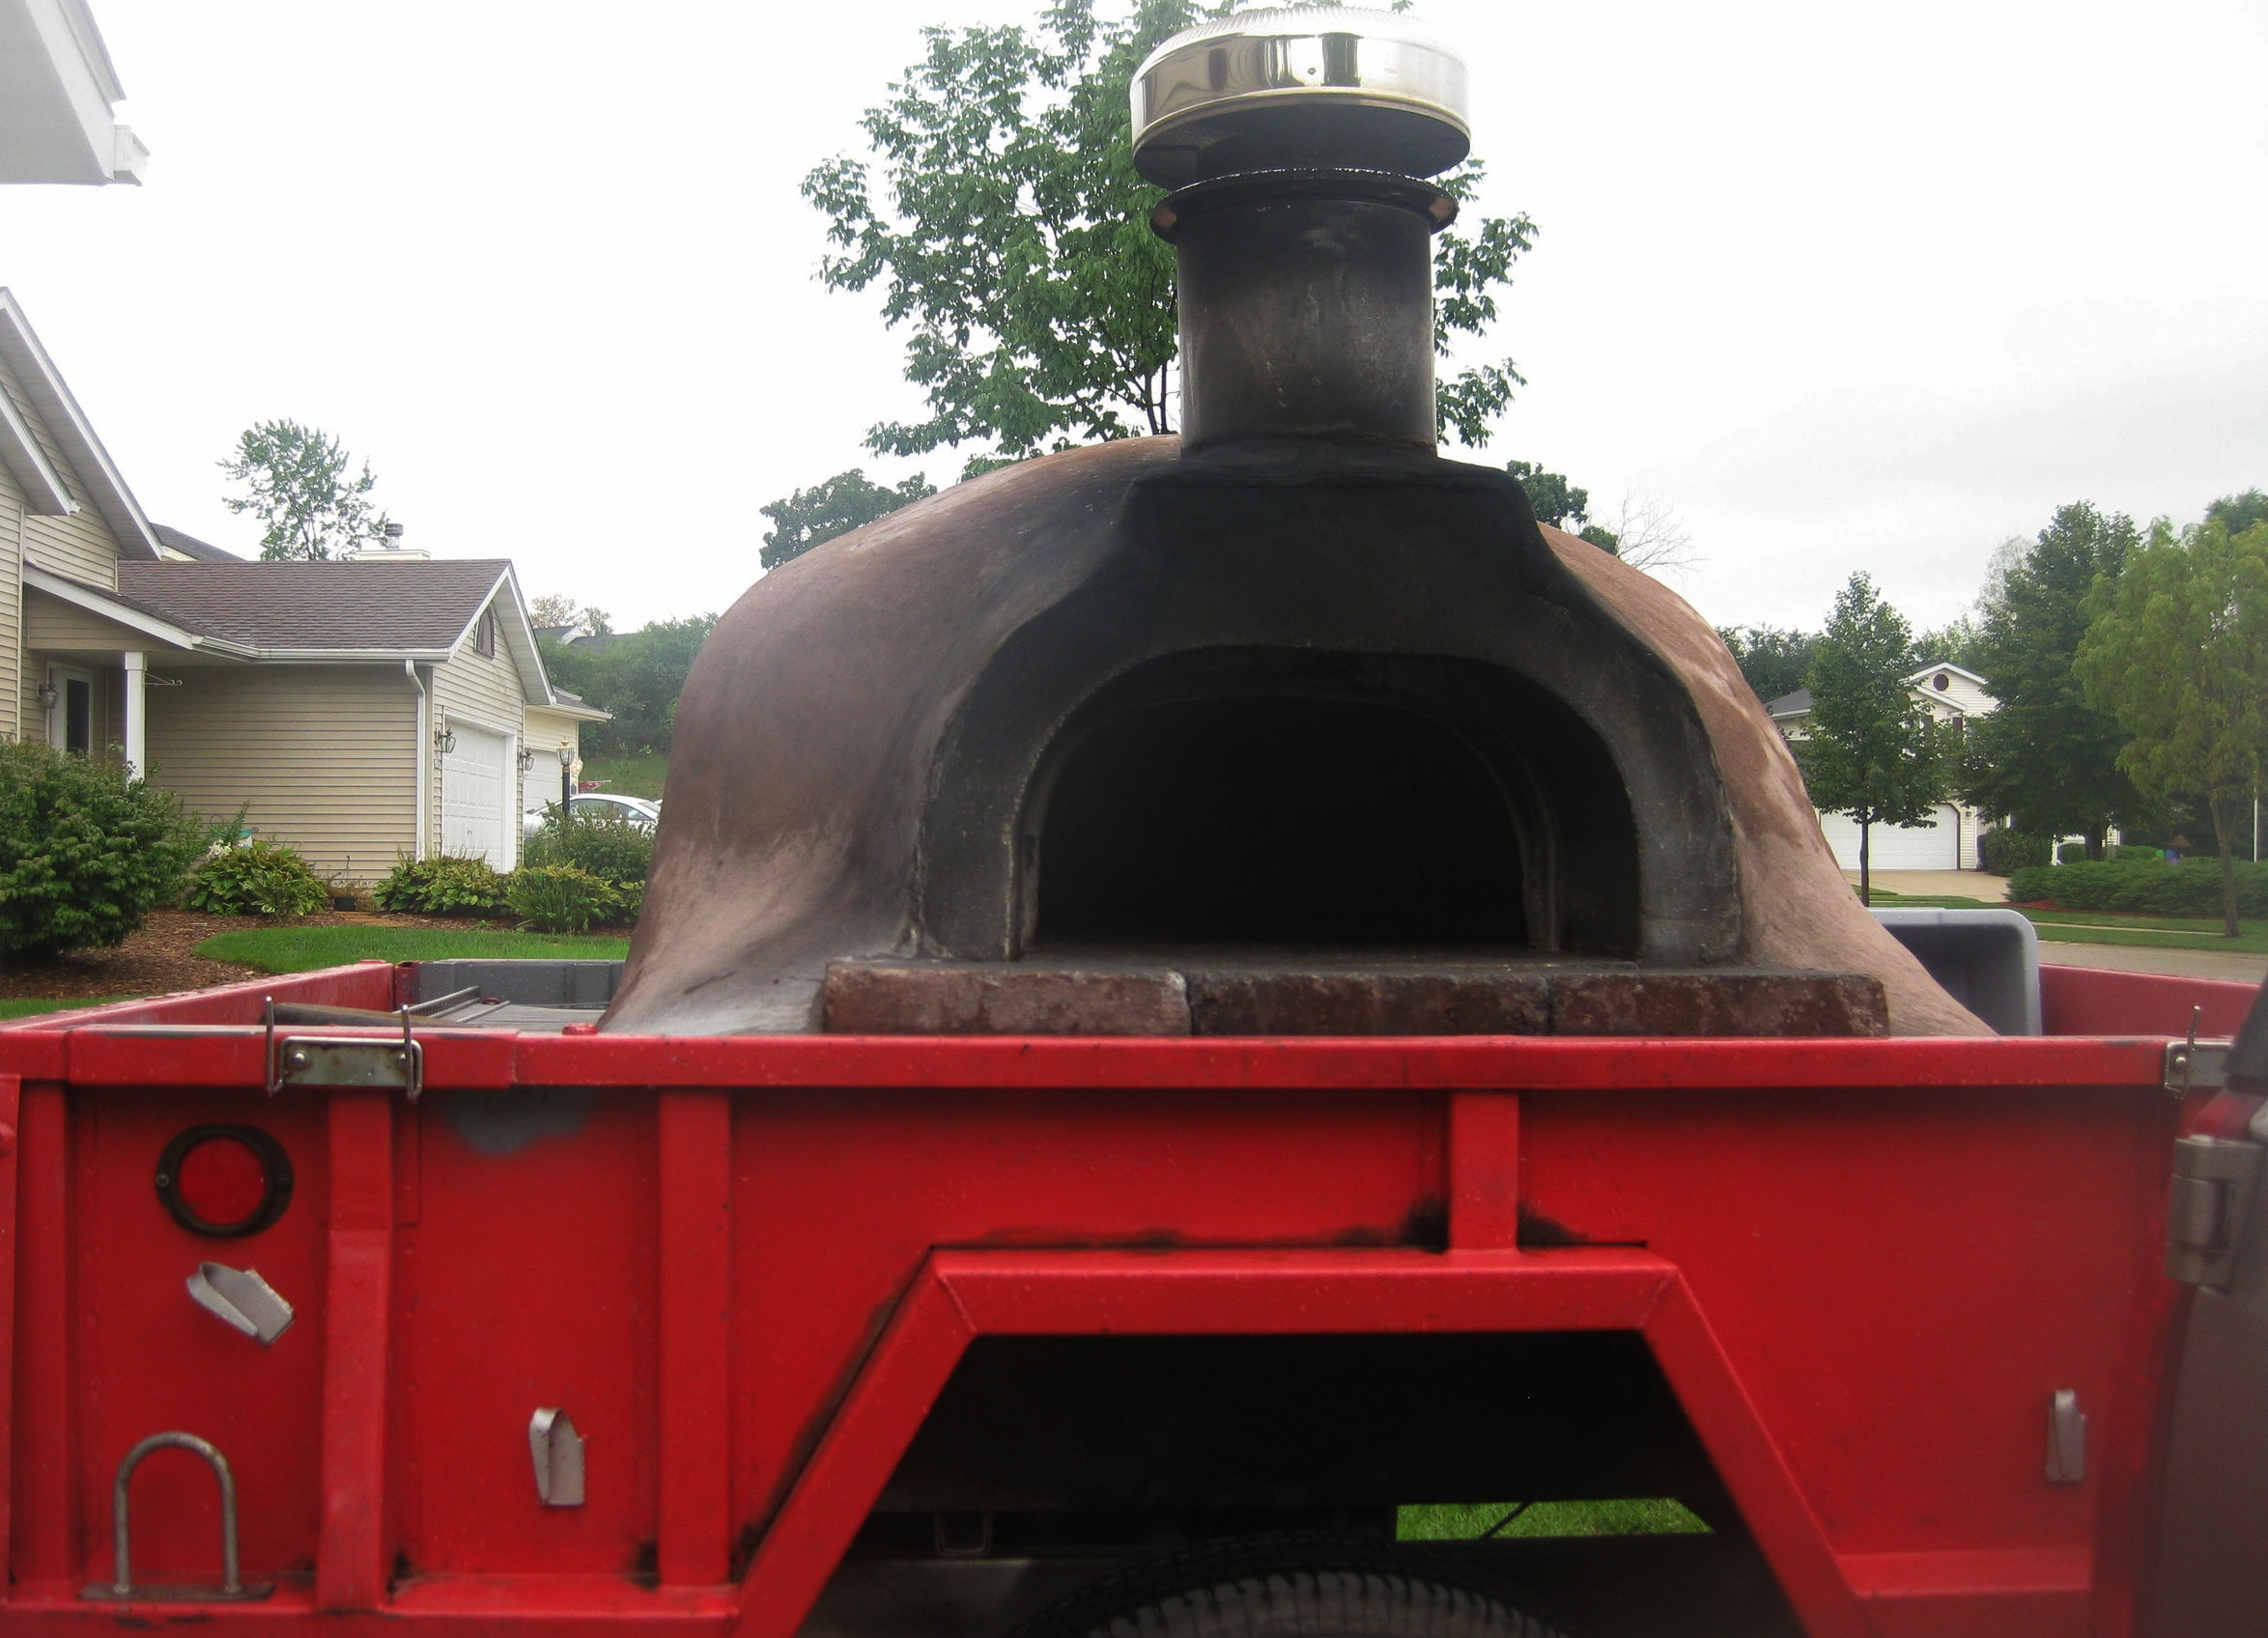 First pizza oven the 3 brothers built in 2010